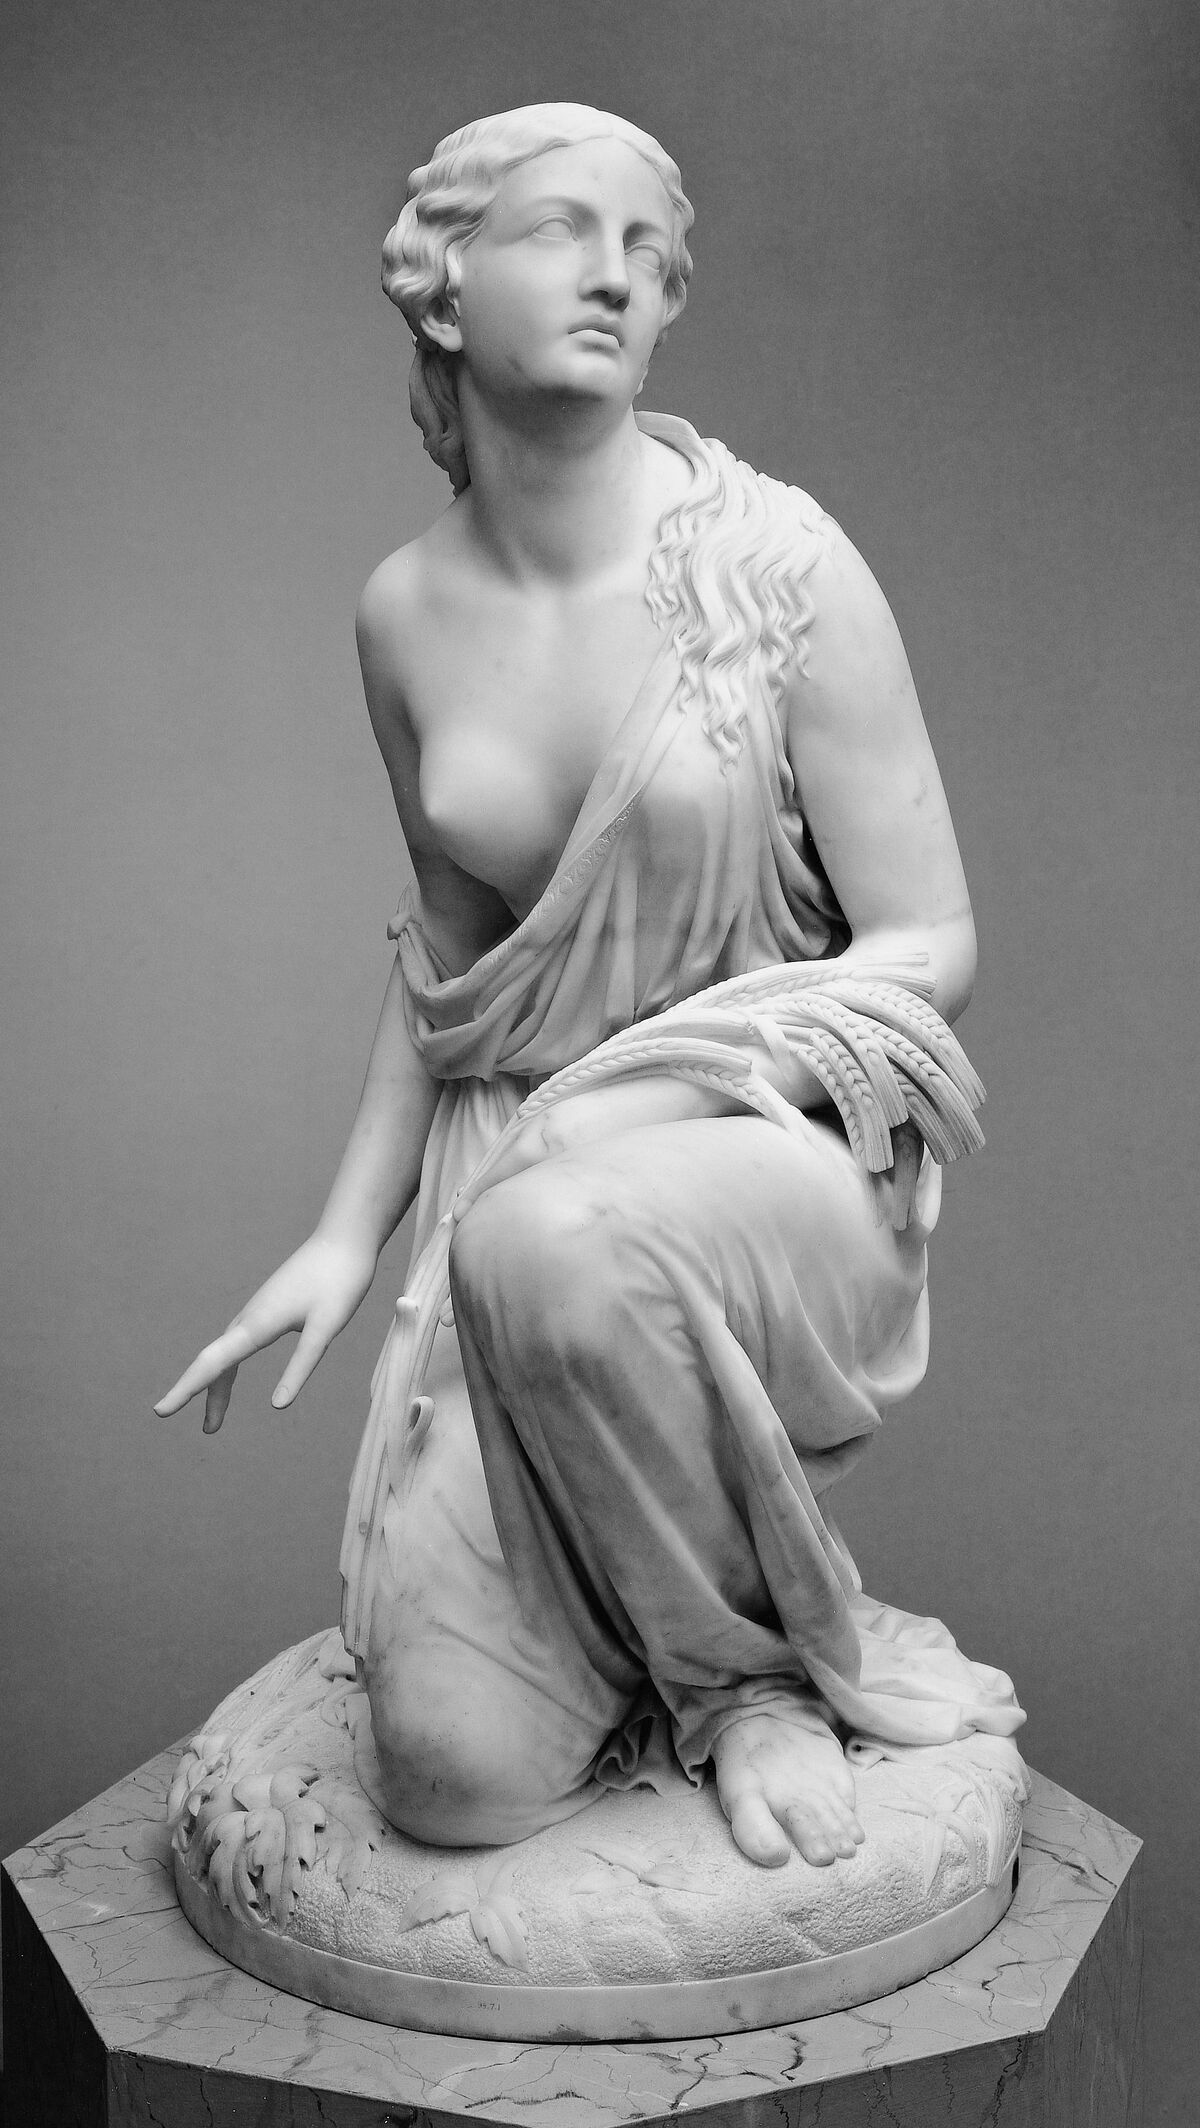 Randolph Rogers, Ruth Gleaning, 1850. Courtesy of the Metropolitan Museum of Art.